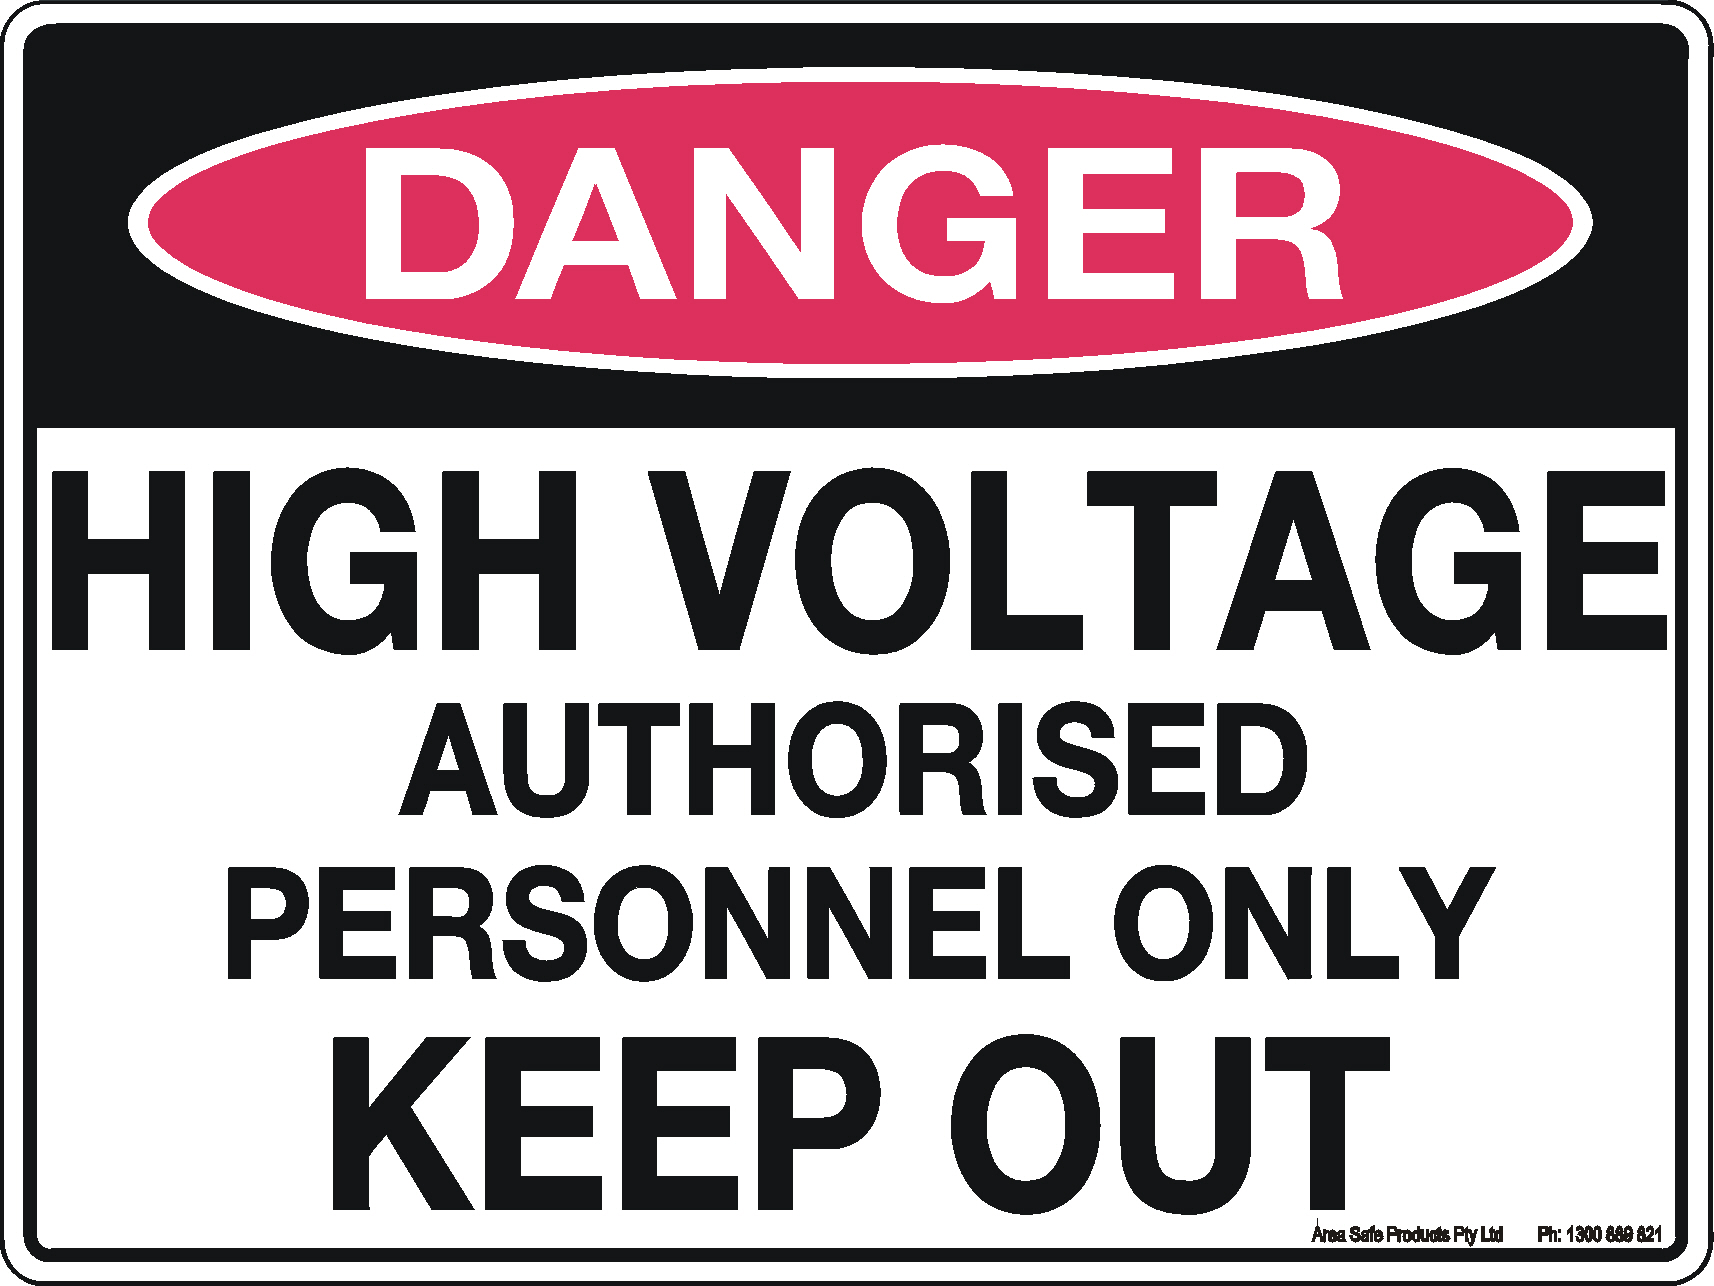 Danger Sign - High Voltage Authorised Personnel Only Keep Out